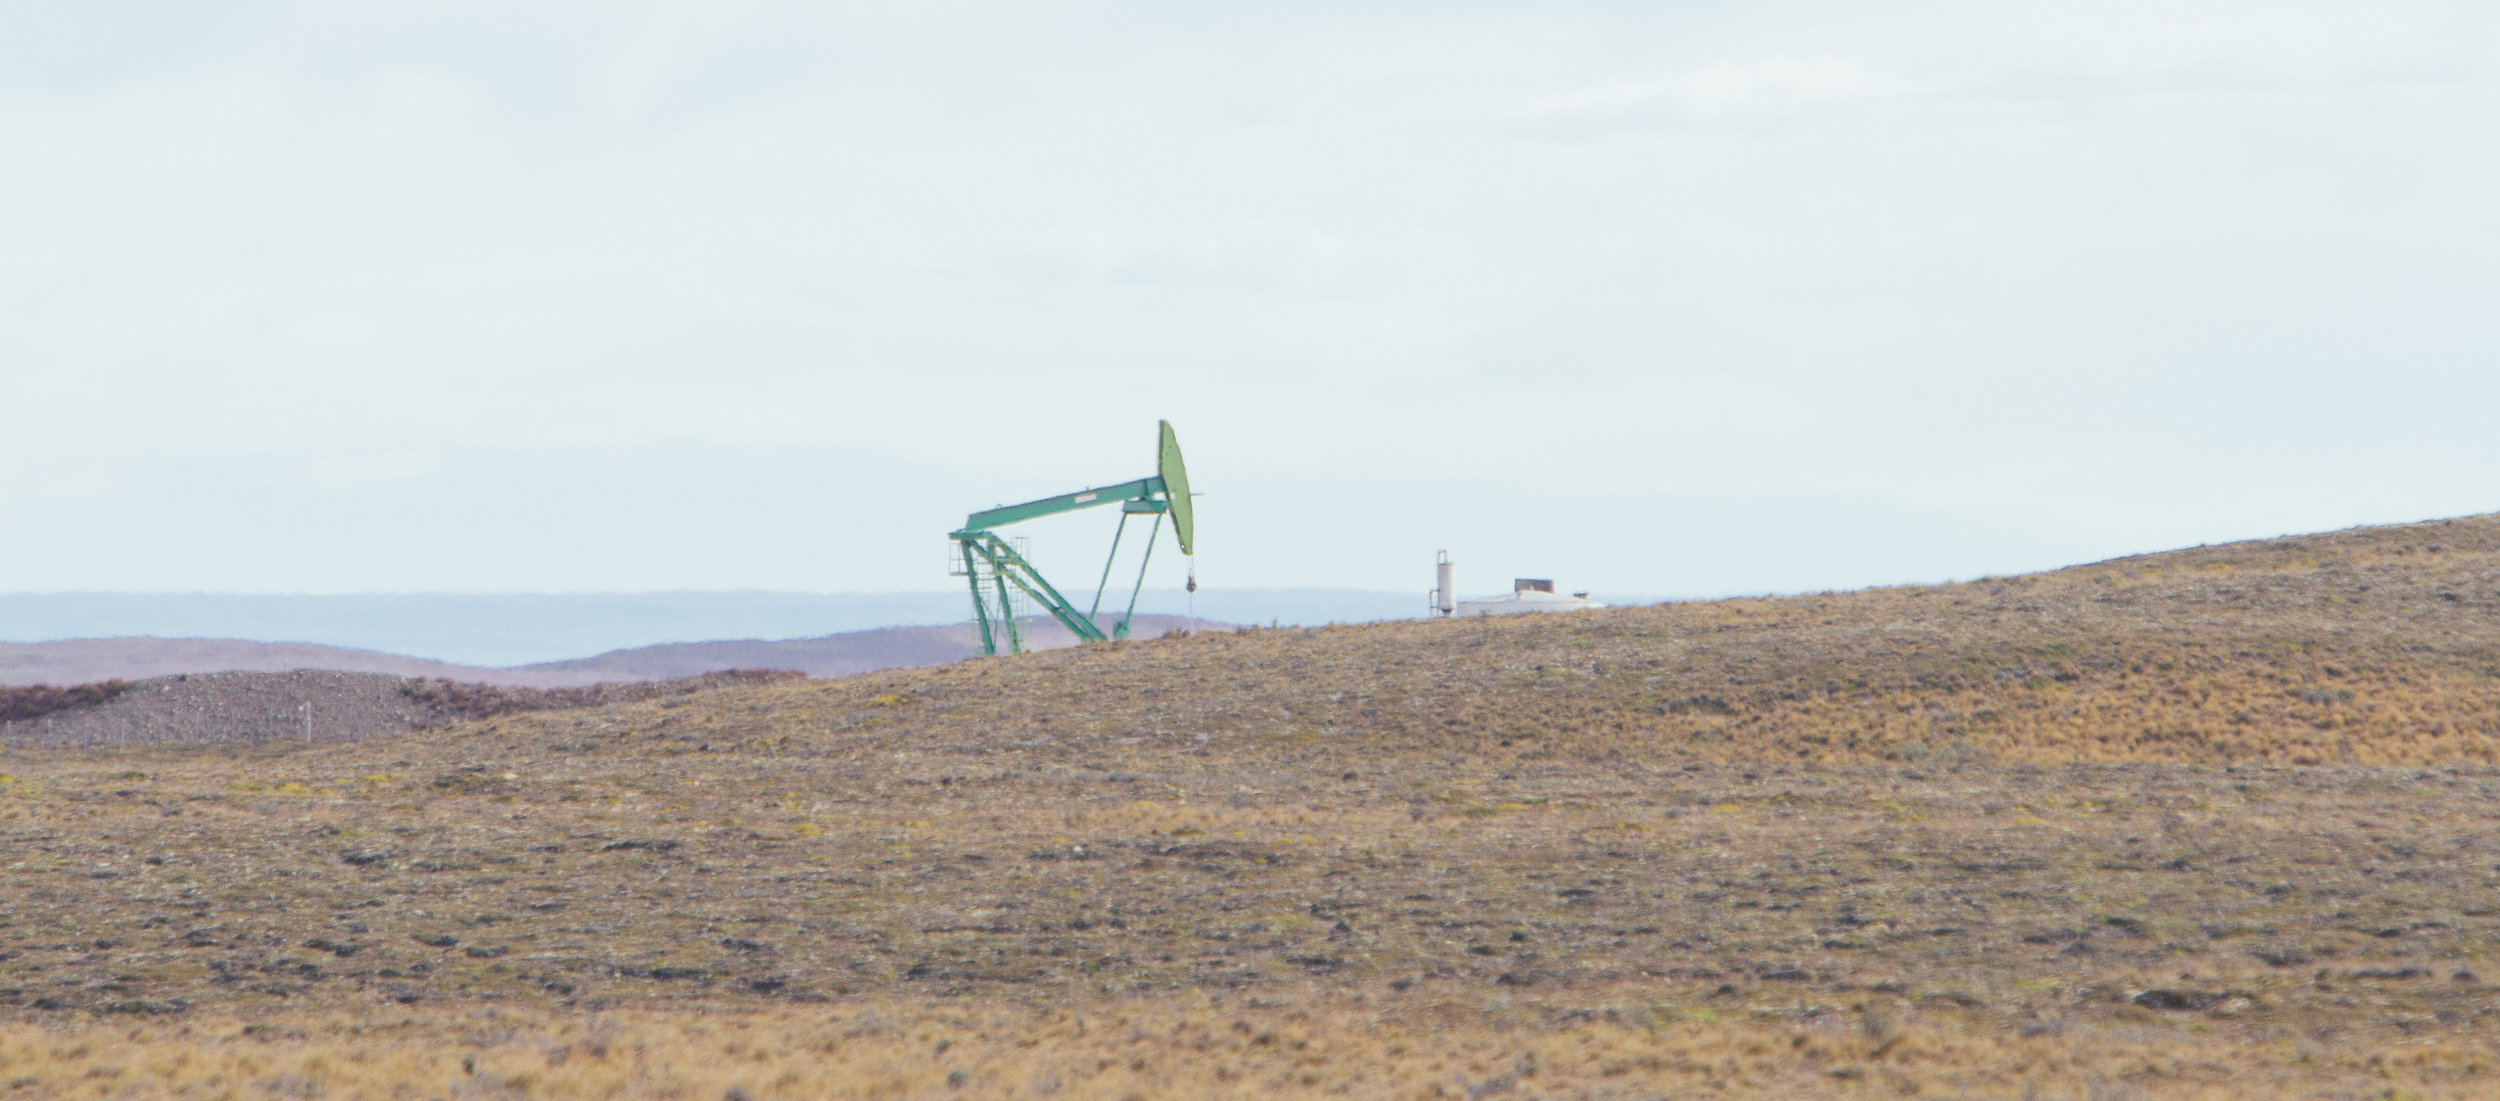 Tierra del Fuego and surrounding regions have active petroleum extraction, however their heyday is long gone.